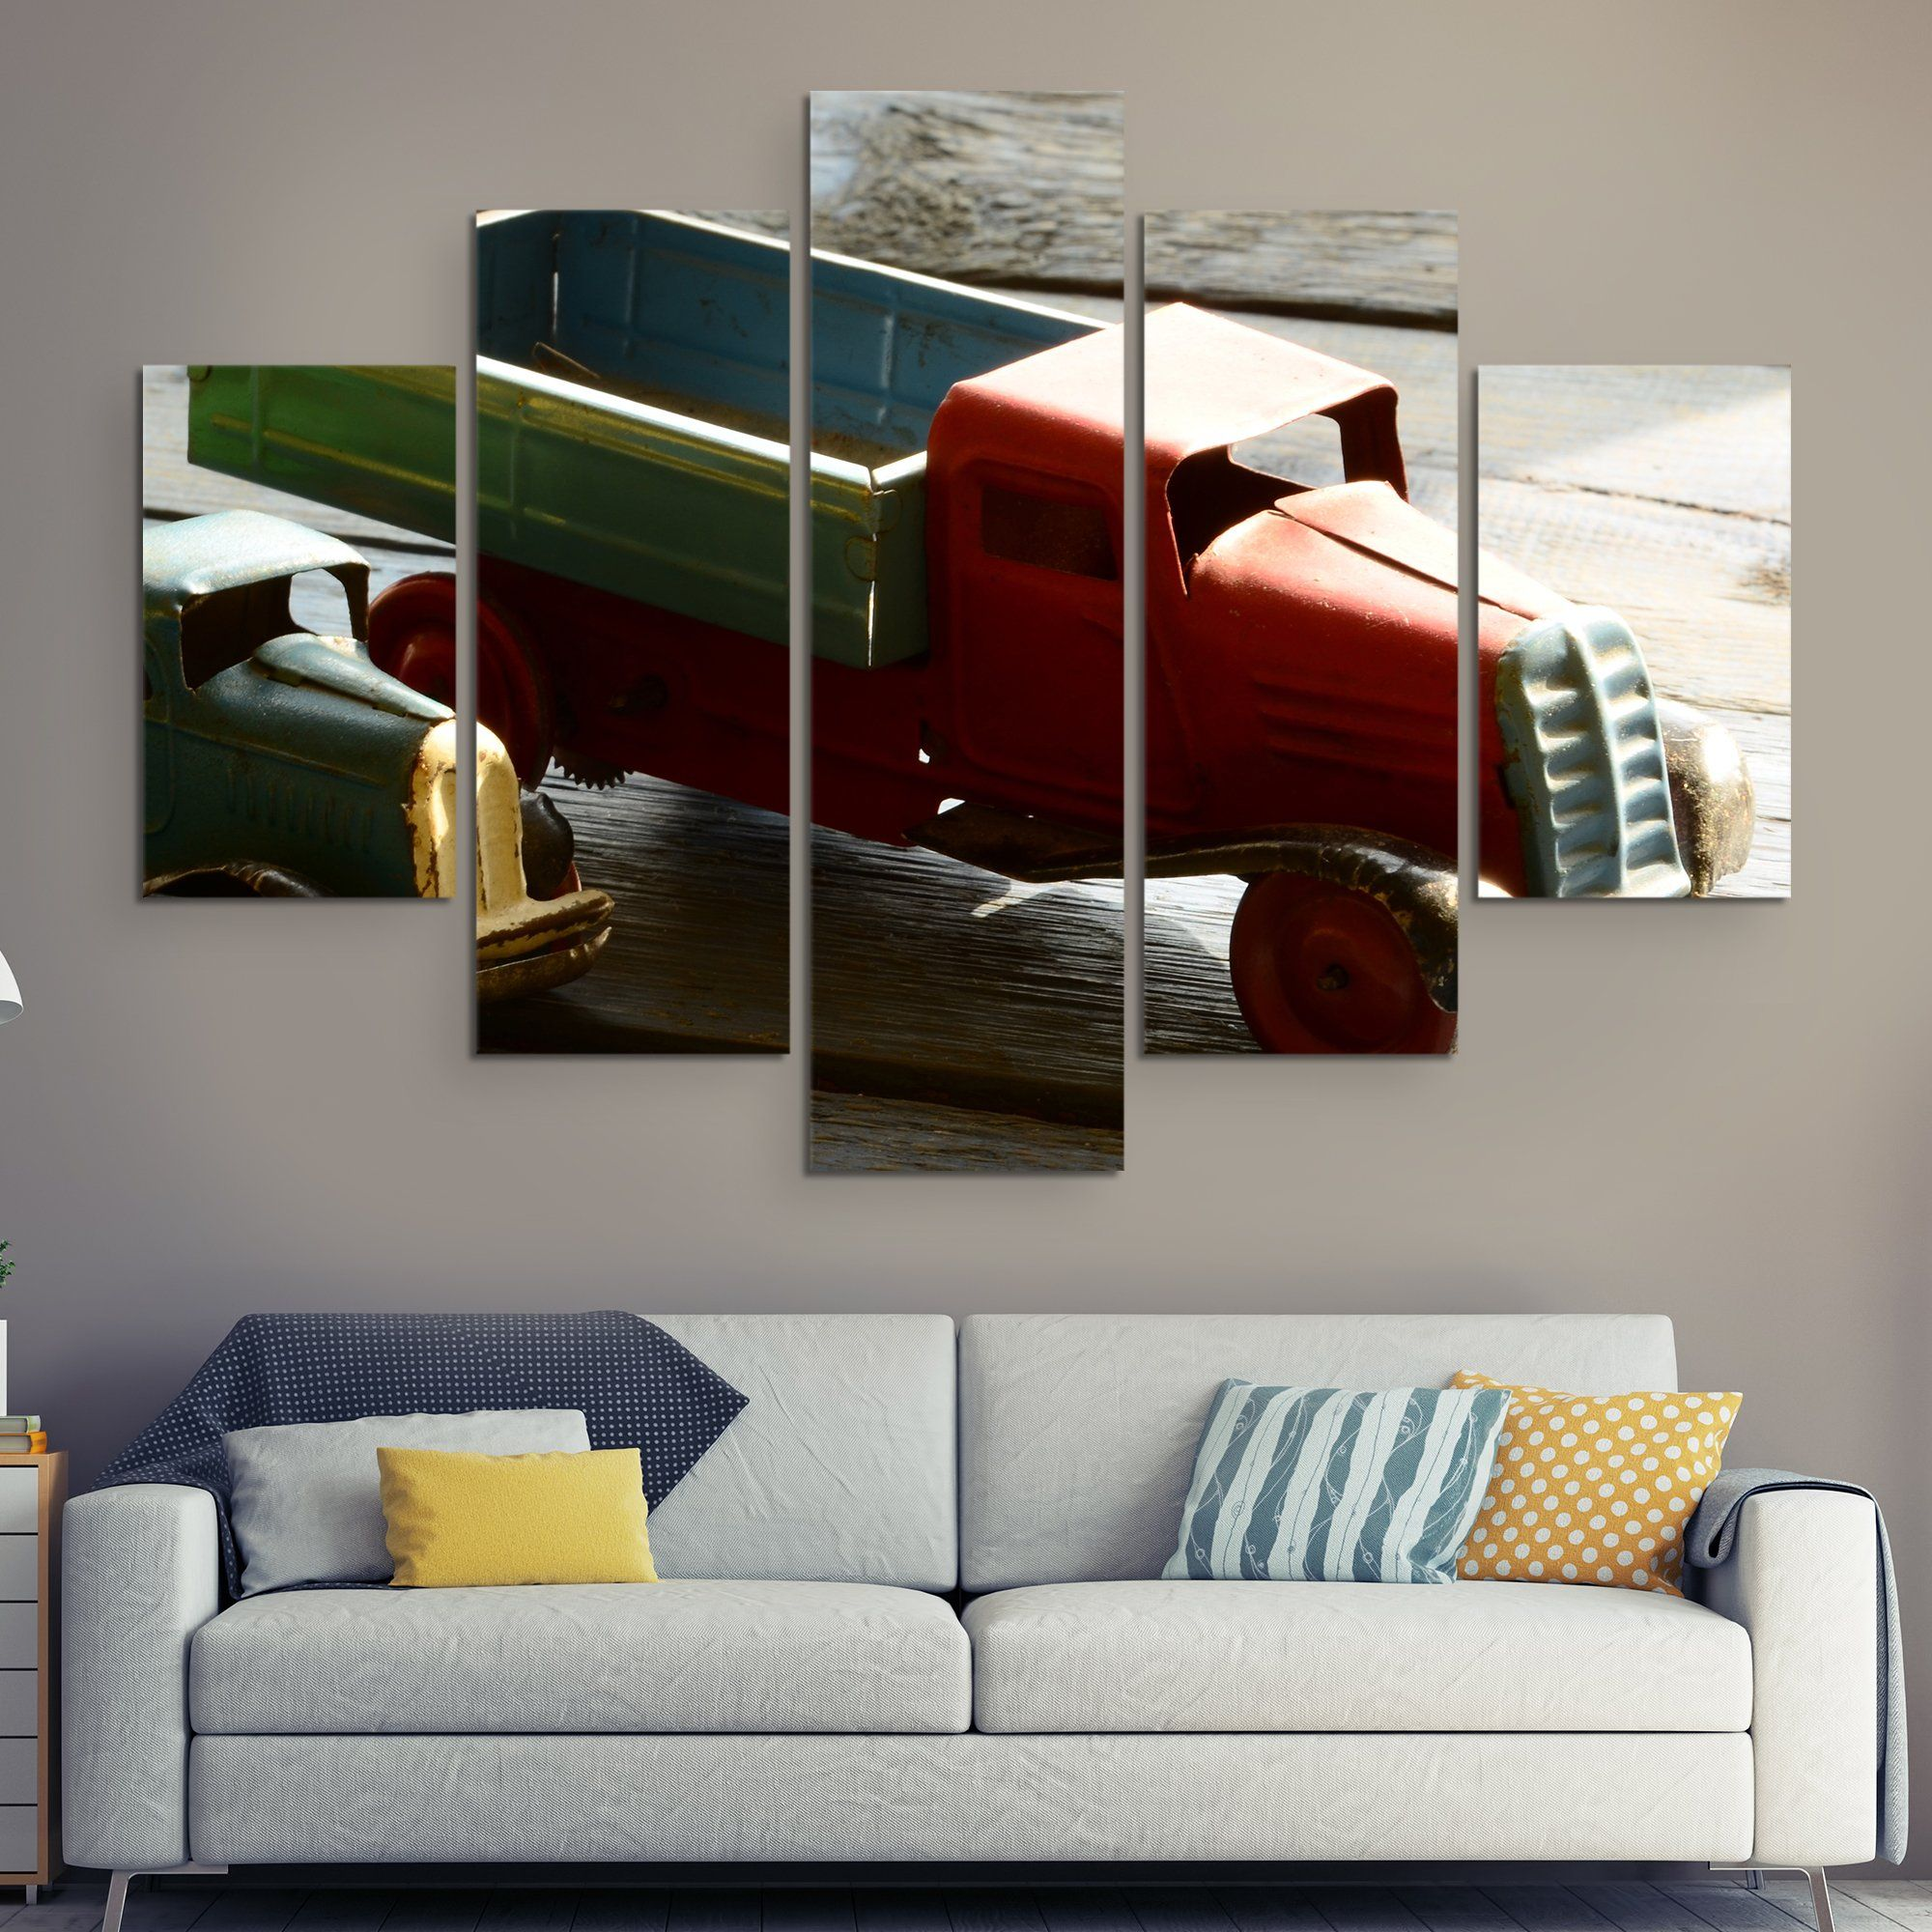 5 piece Miniature truck wall art